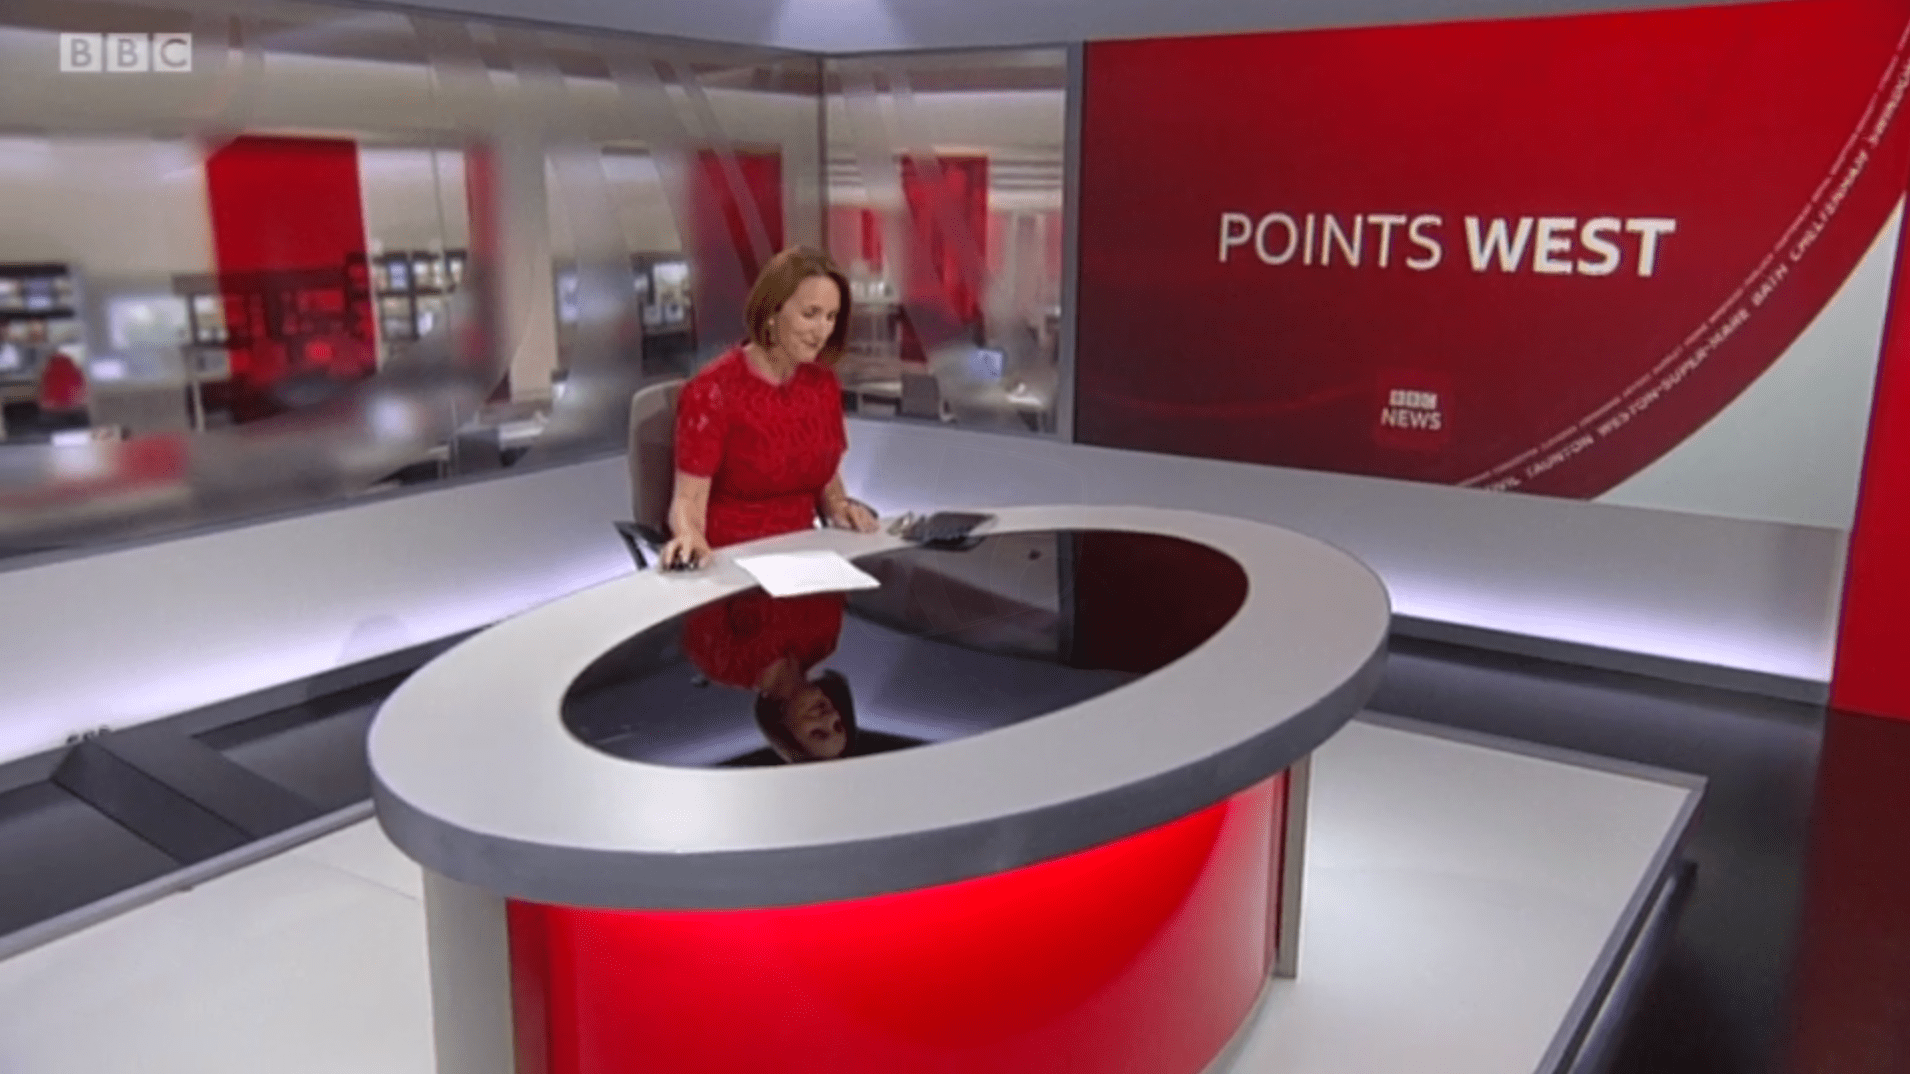 PICTURED: BBC Points West studio presentation. Presenter: Sarah-Jane Bungay.